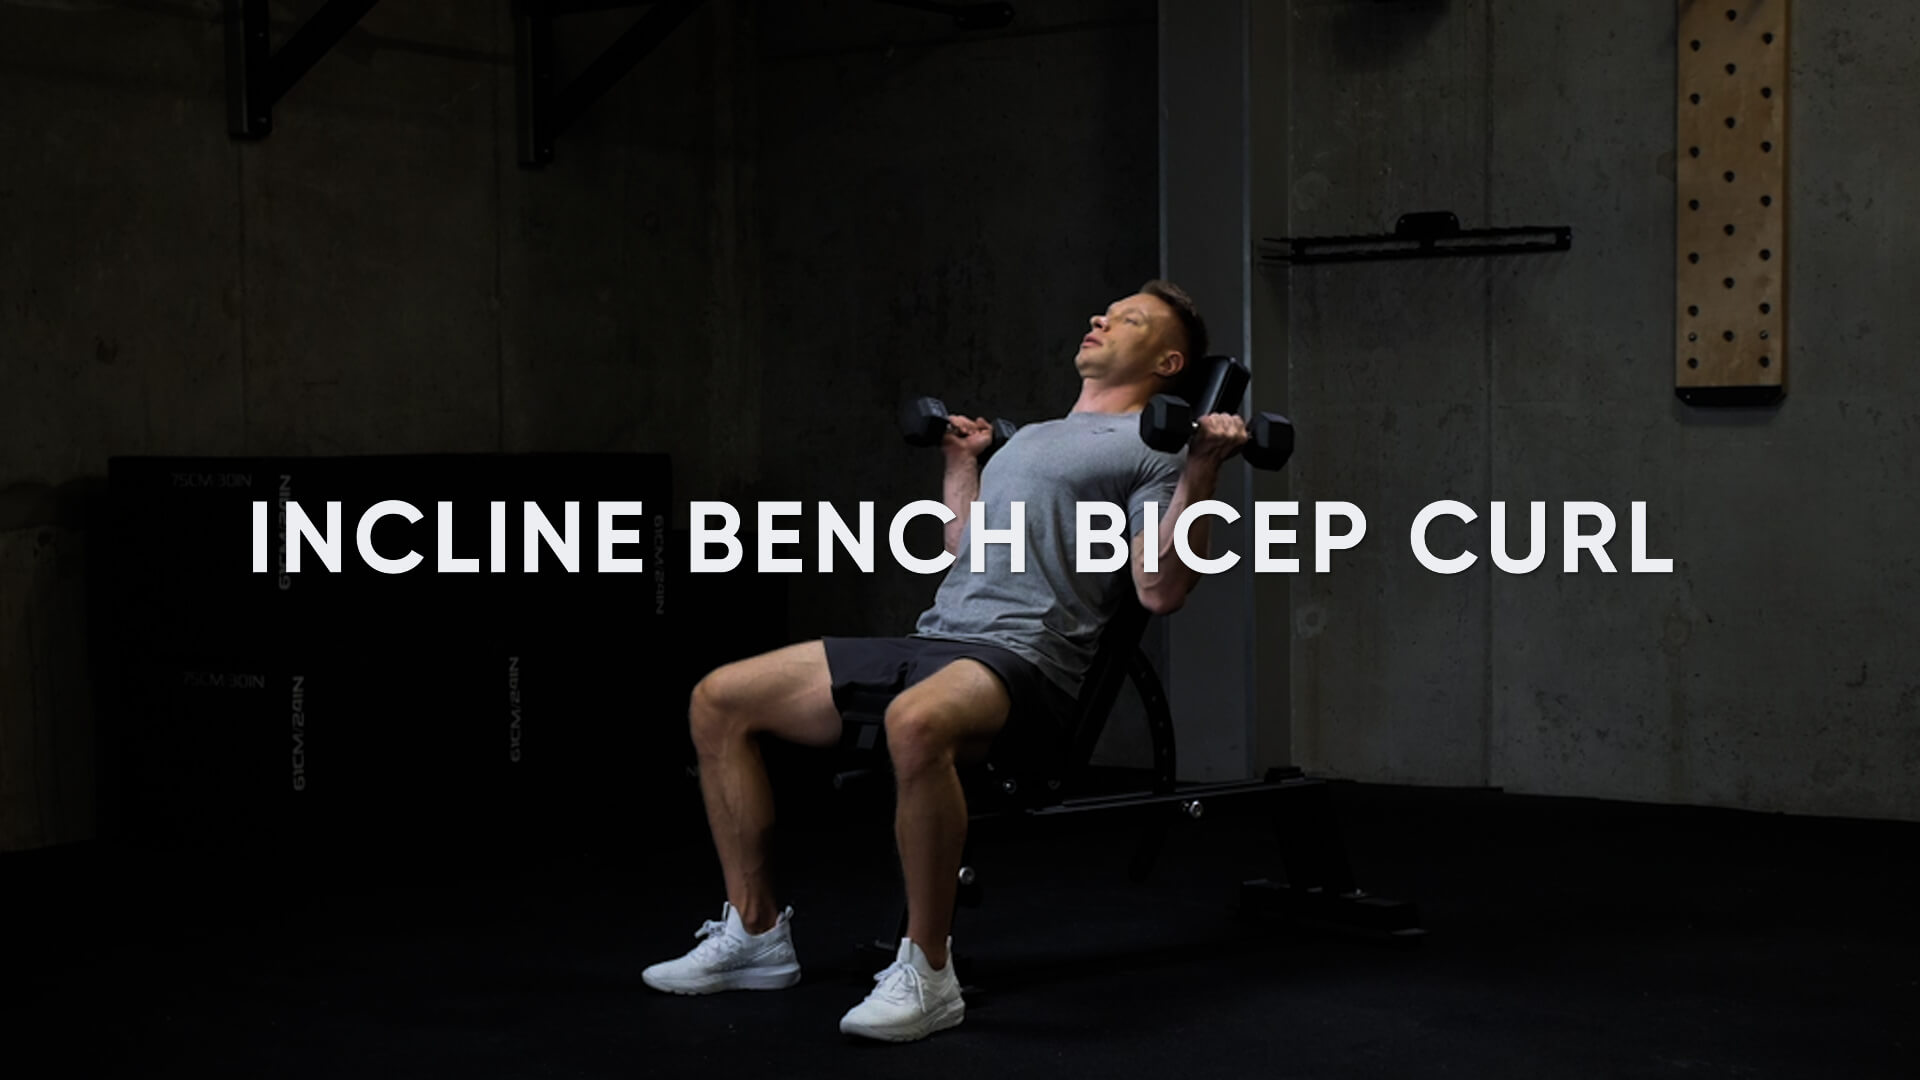 Incline Bench Bicep Curl